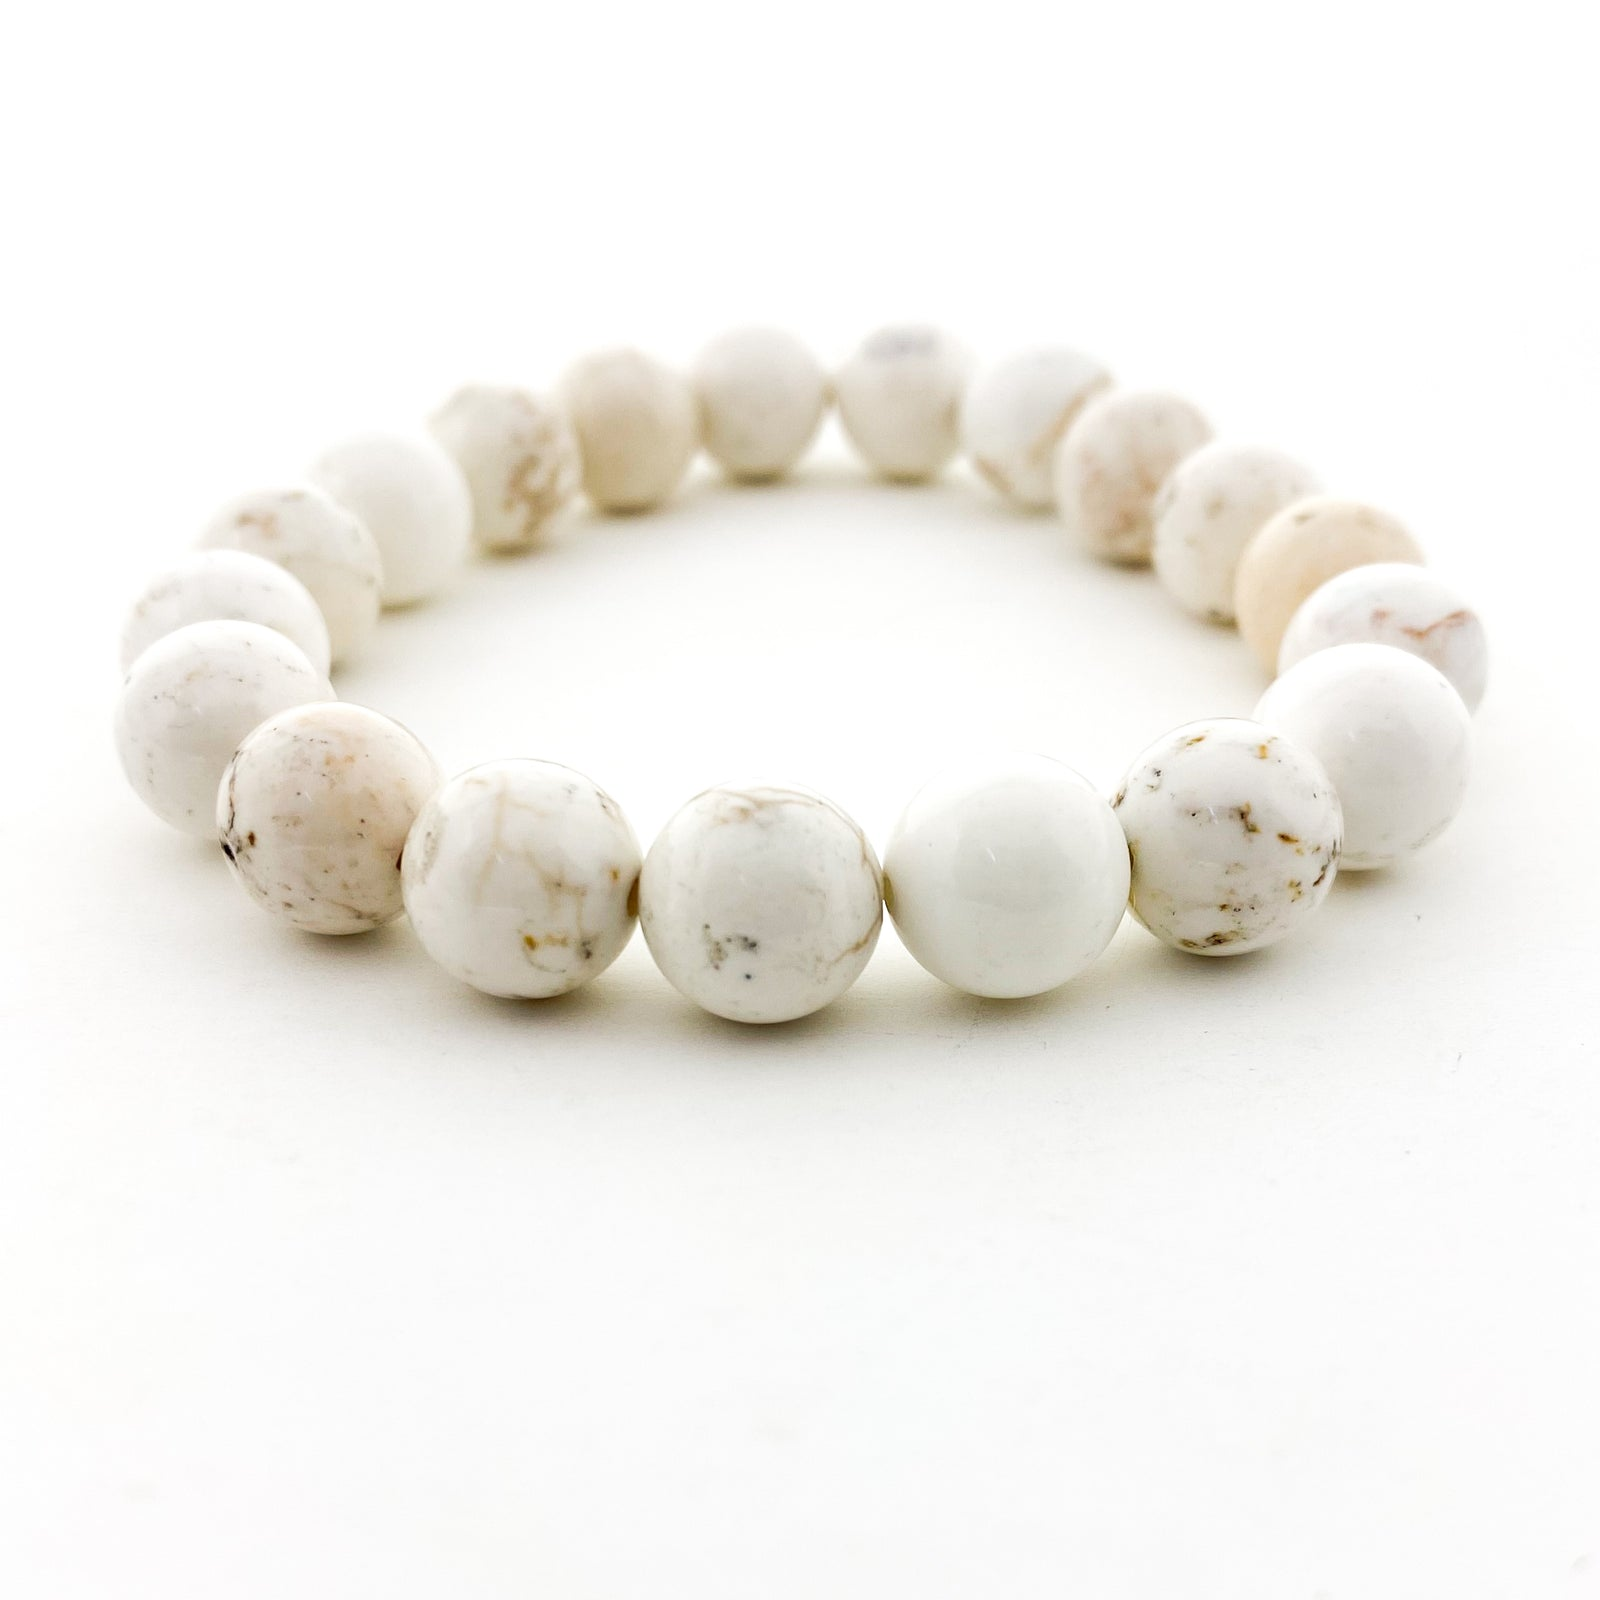 CREAM HOWLITE STONE BRACELETS | 10MM | STYLE OPTIONS